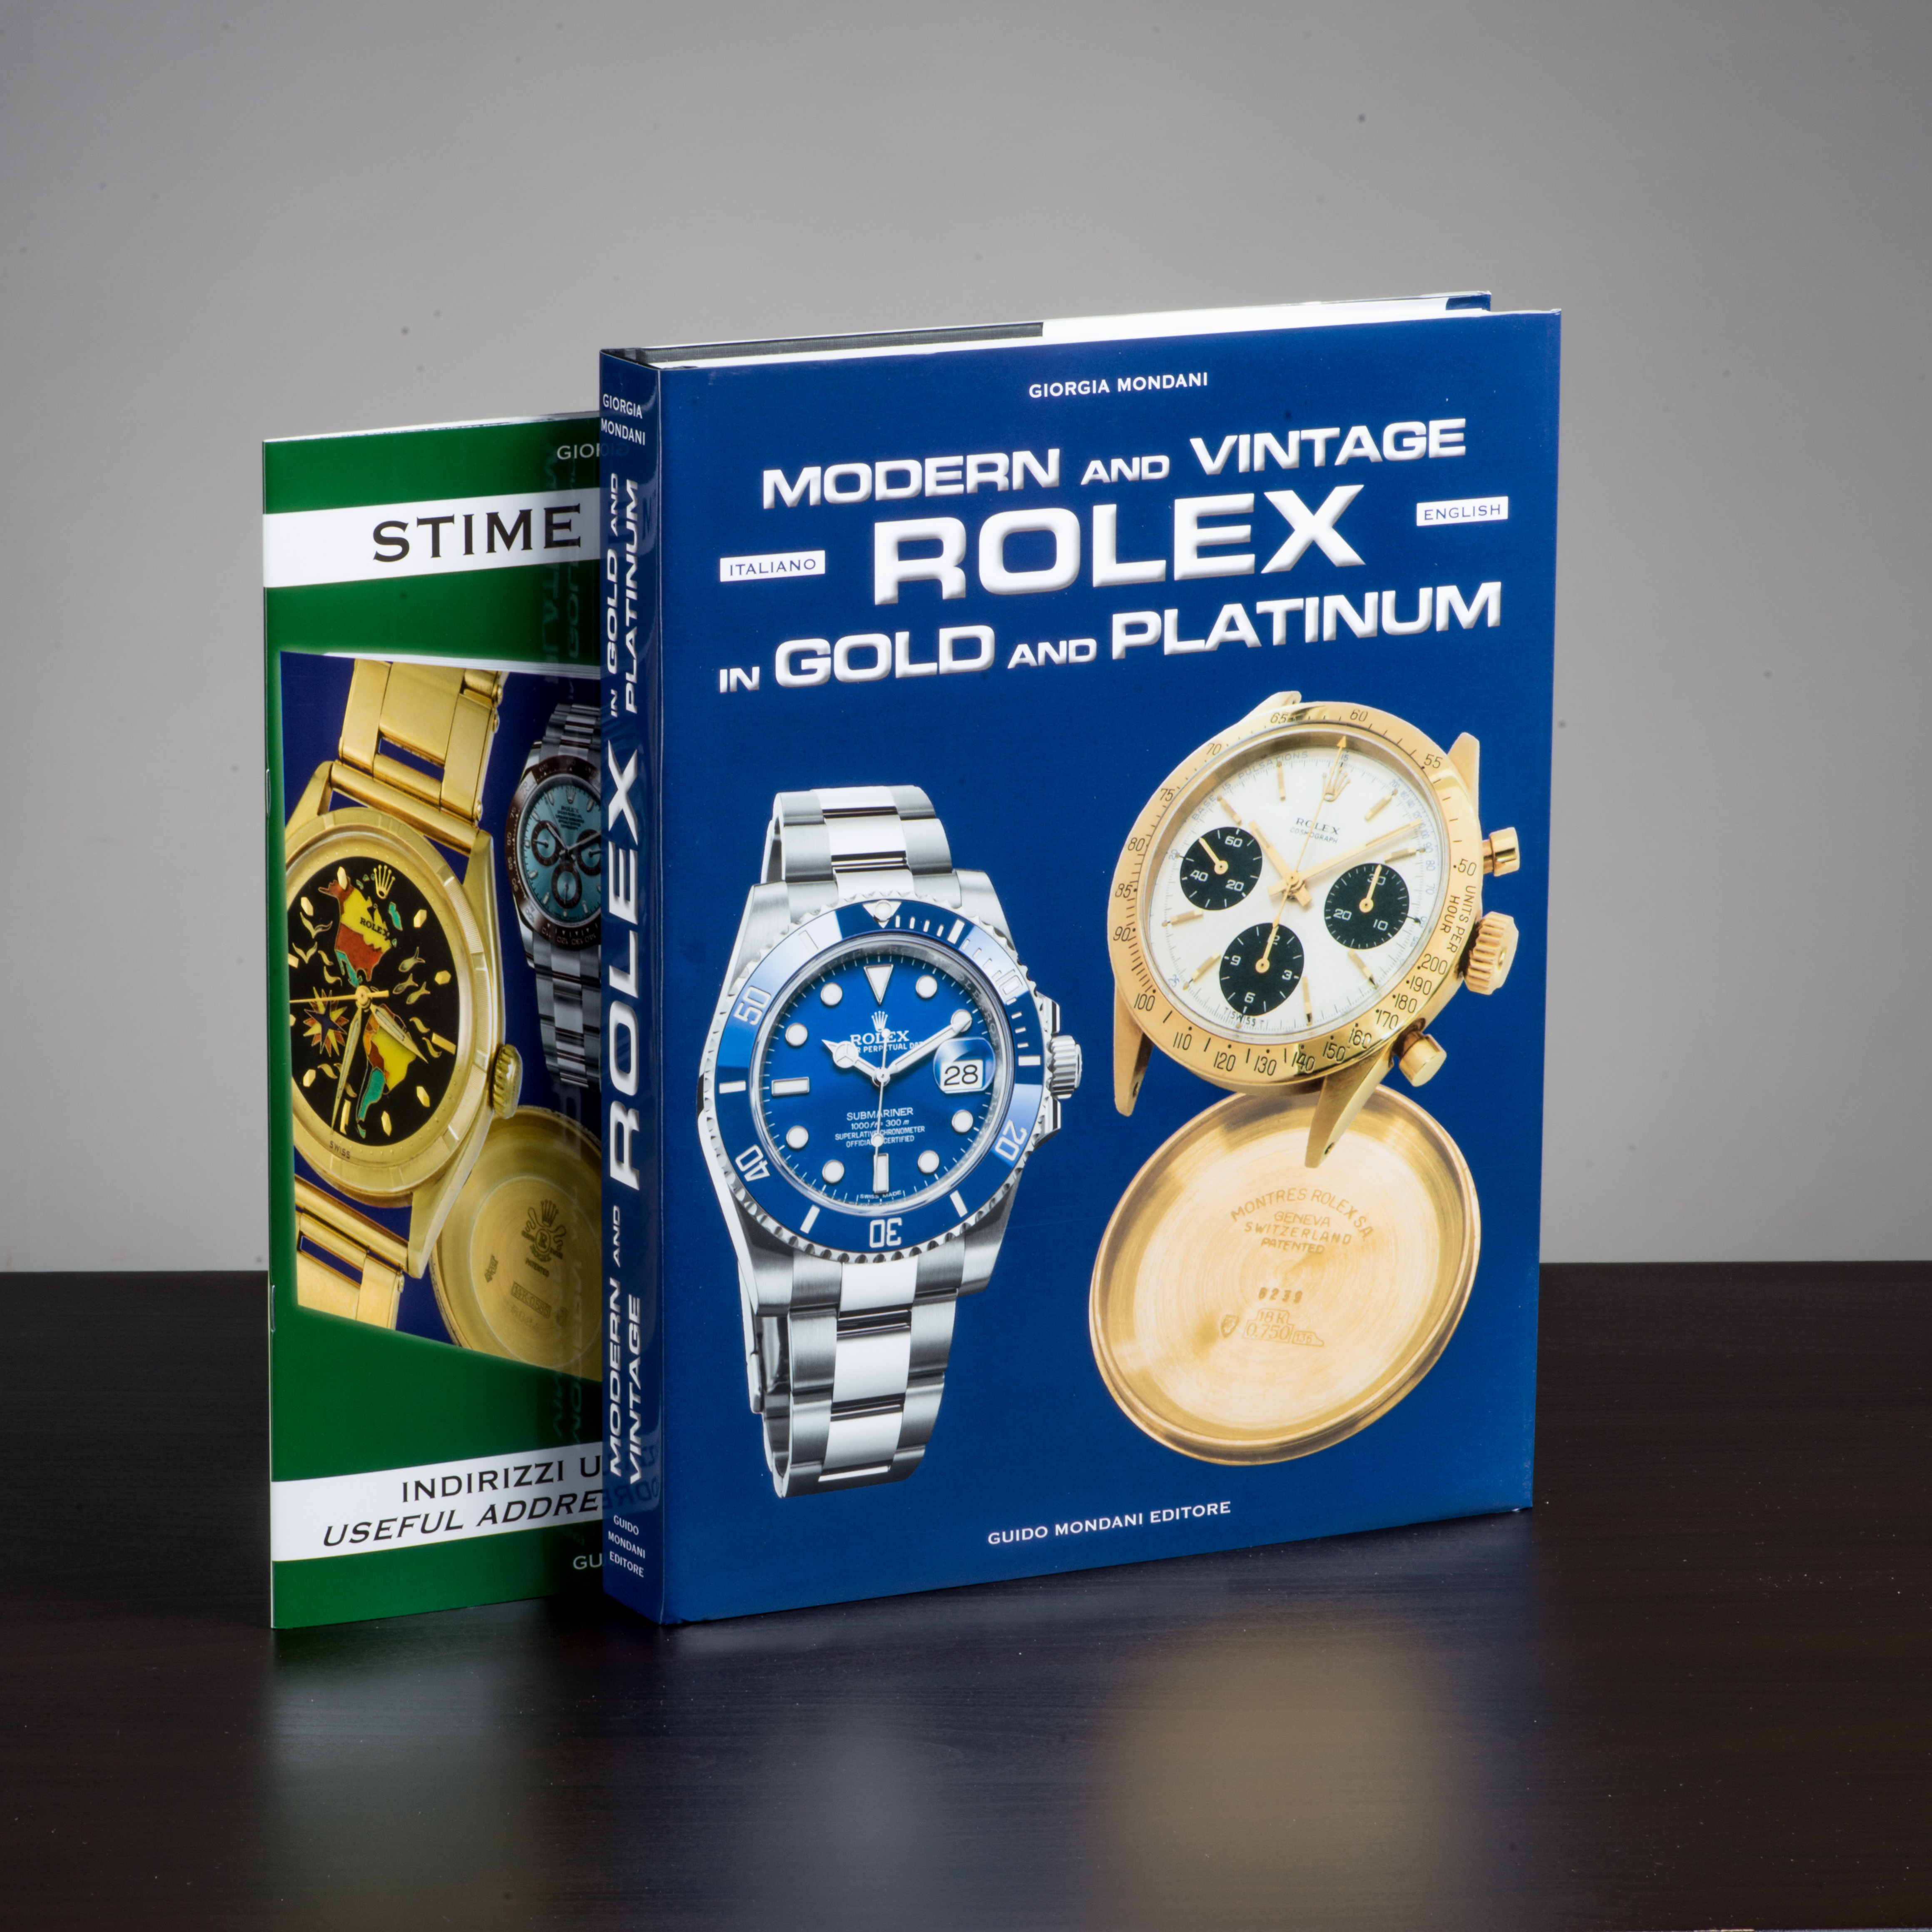 Modern and Vintage Rolex in Gold & Platinum